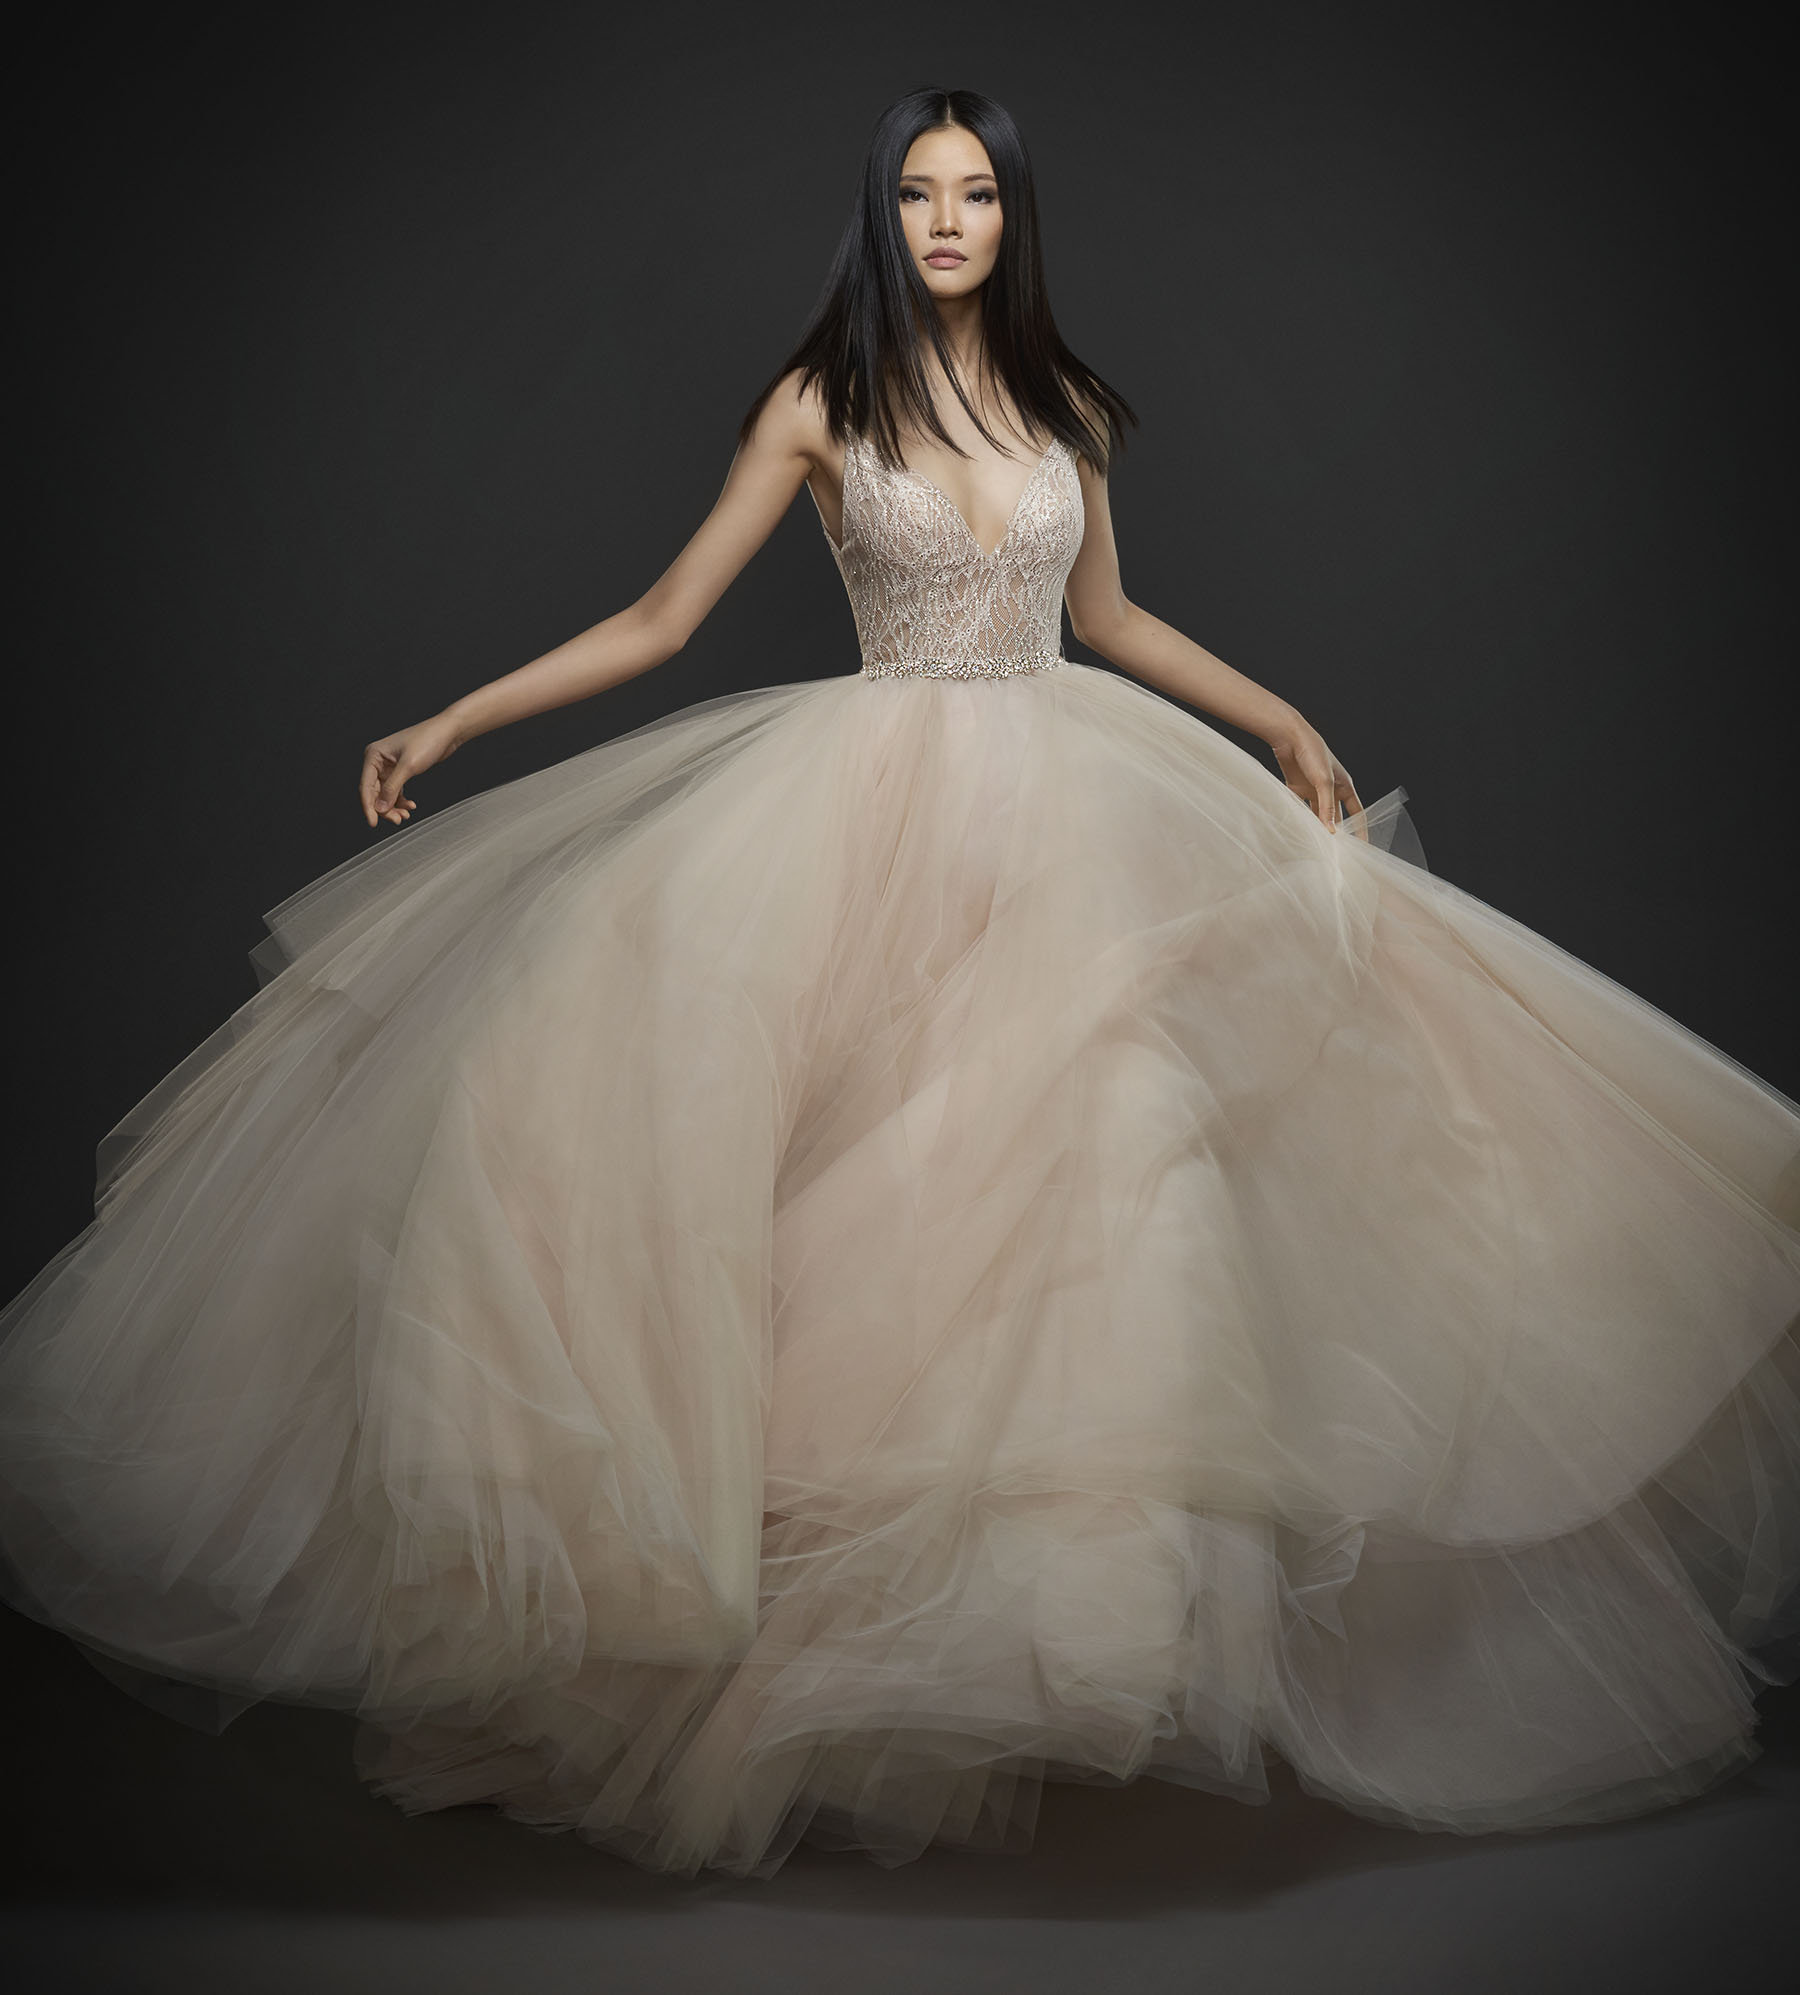 239ff40c8c8c Bridal Gowns and Wedding Dresses by JLM Couture - Style 3751